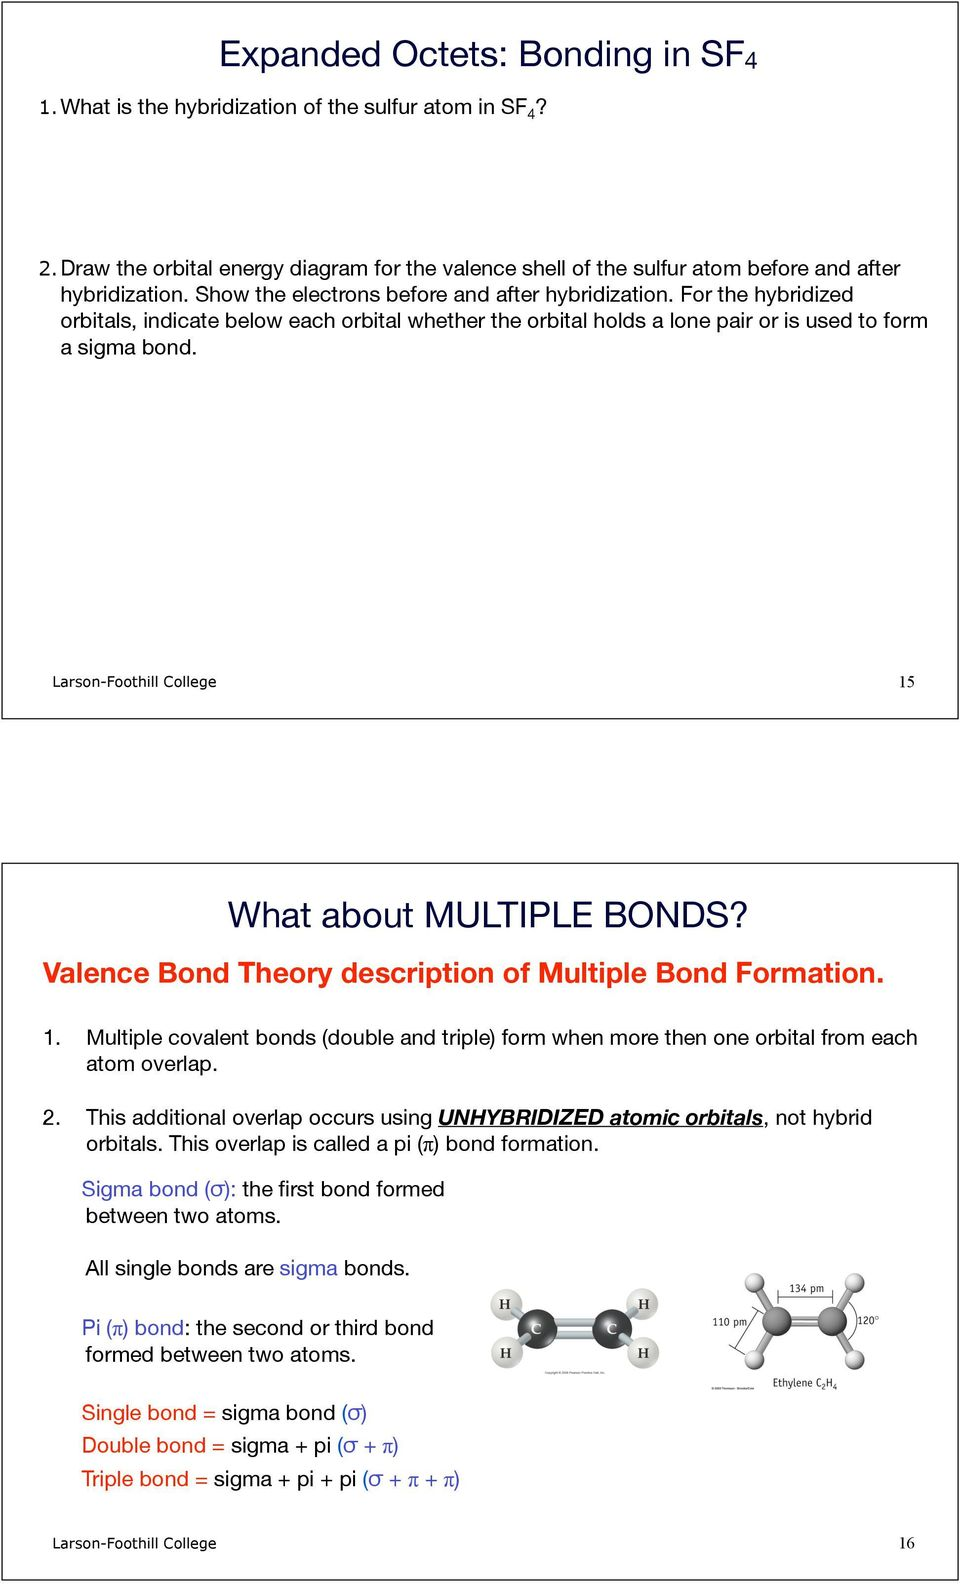 Larson-Foothill College 15 What about MULTIPLE BONDS? Valence Bond Theory description of Multiple Bond Formation. 1. Multiple covalent bonds (double and triple) form when more then one orbital from each atom overlap.